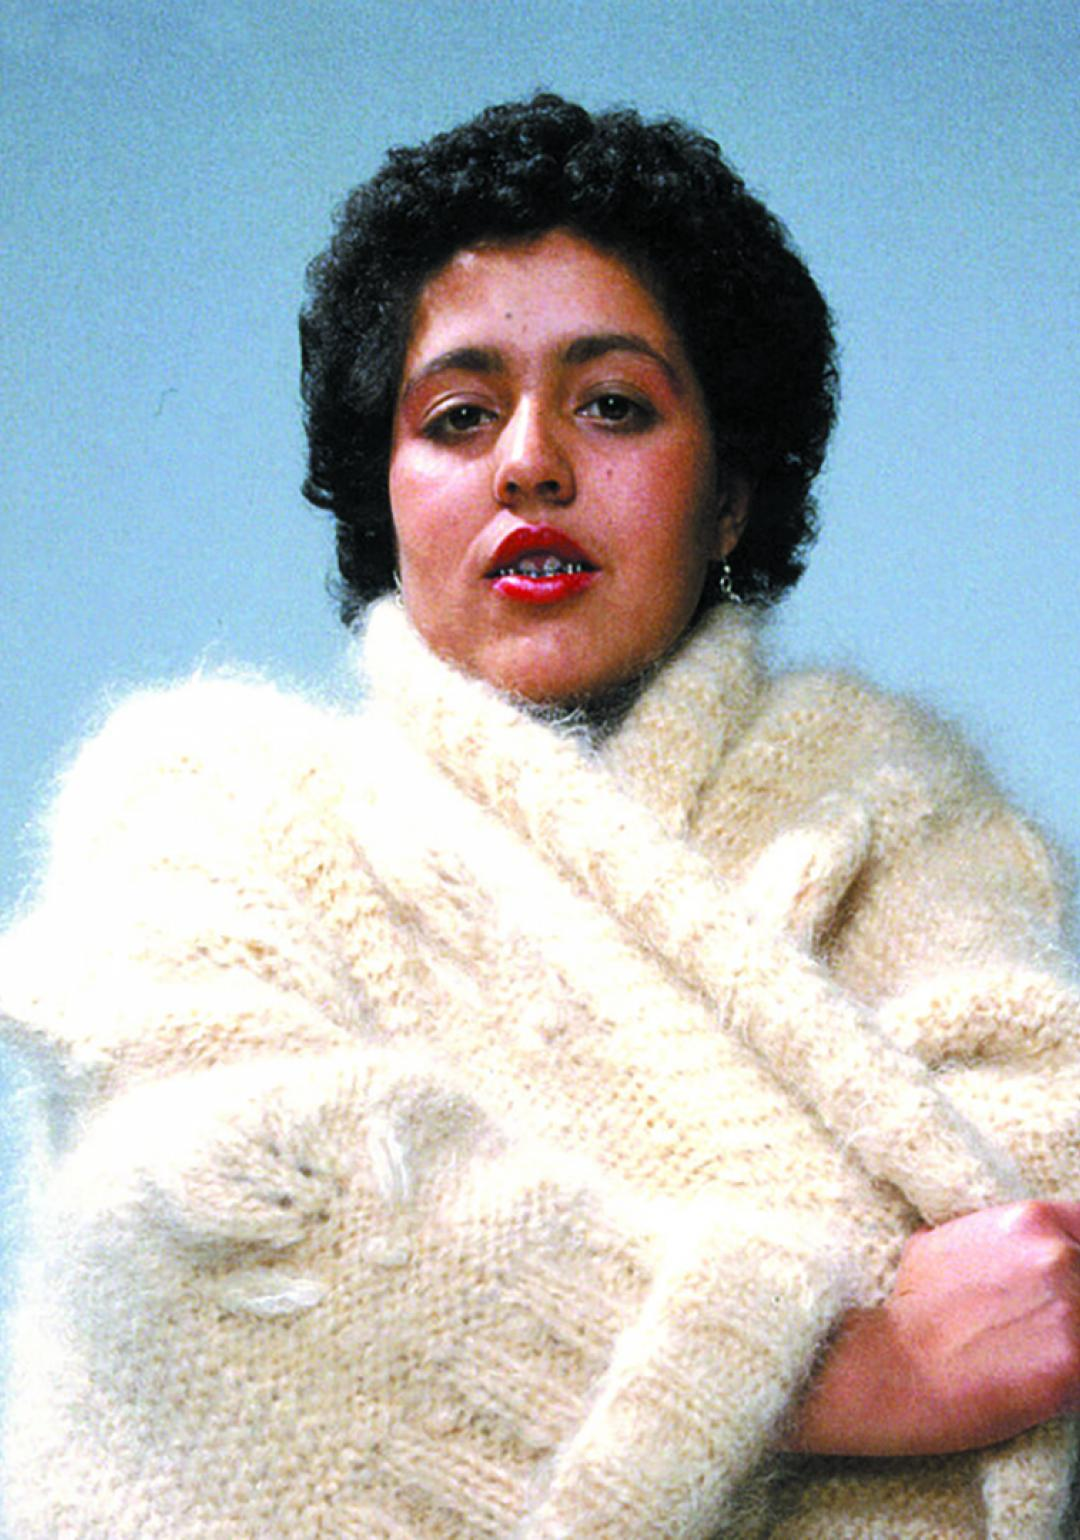 View new film Poly Styrene: I Am A Cliché (12)